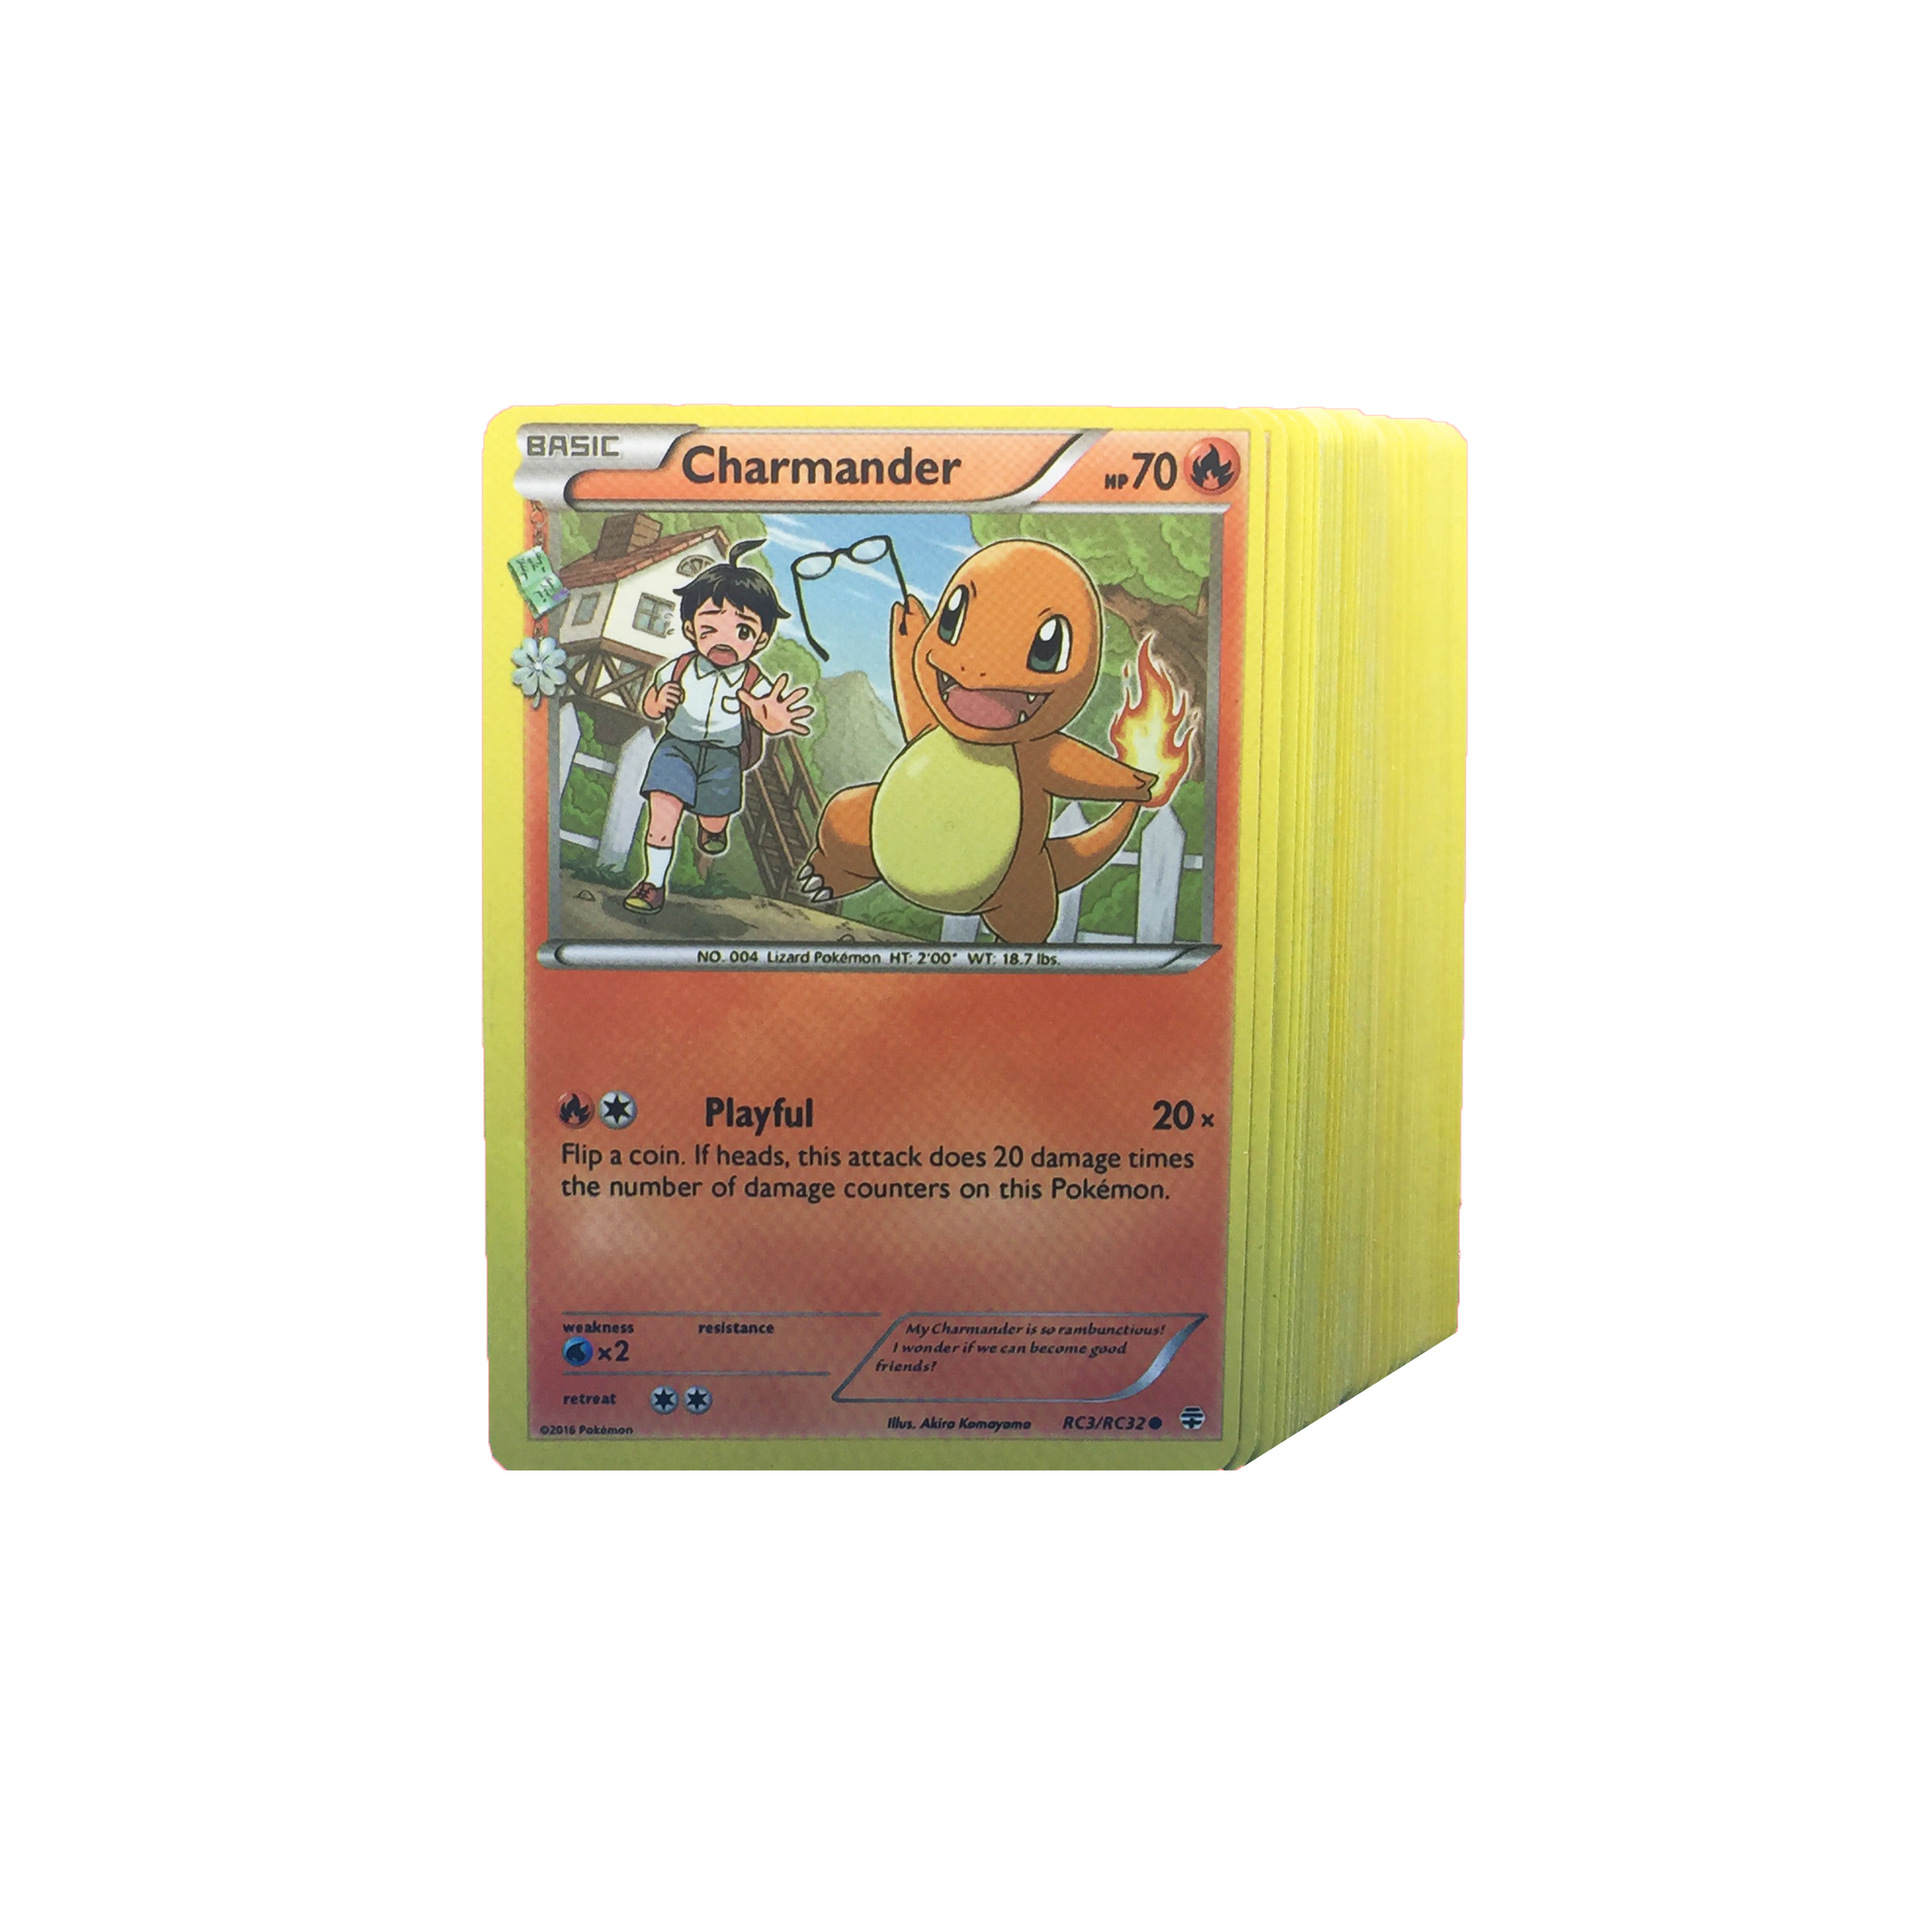 TAKARA TOMY POKEMON CARDS No Repeat Pokemon Battle Toys Hobbies Hobby Collectibles Game Collection Anime Cards for Children